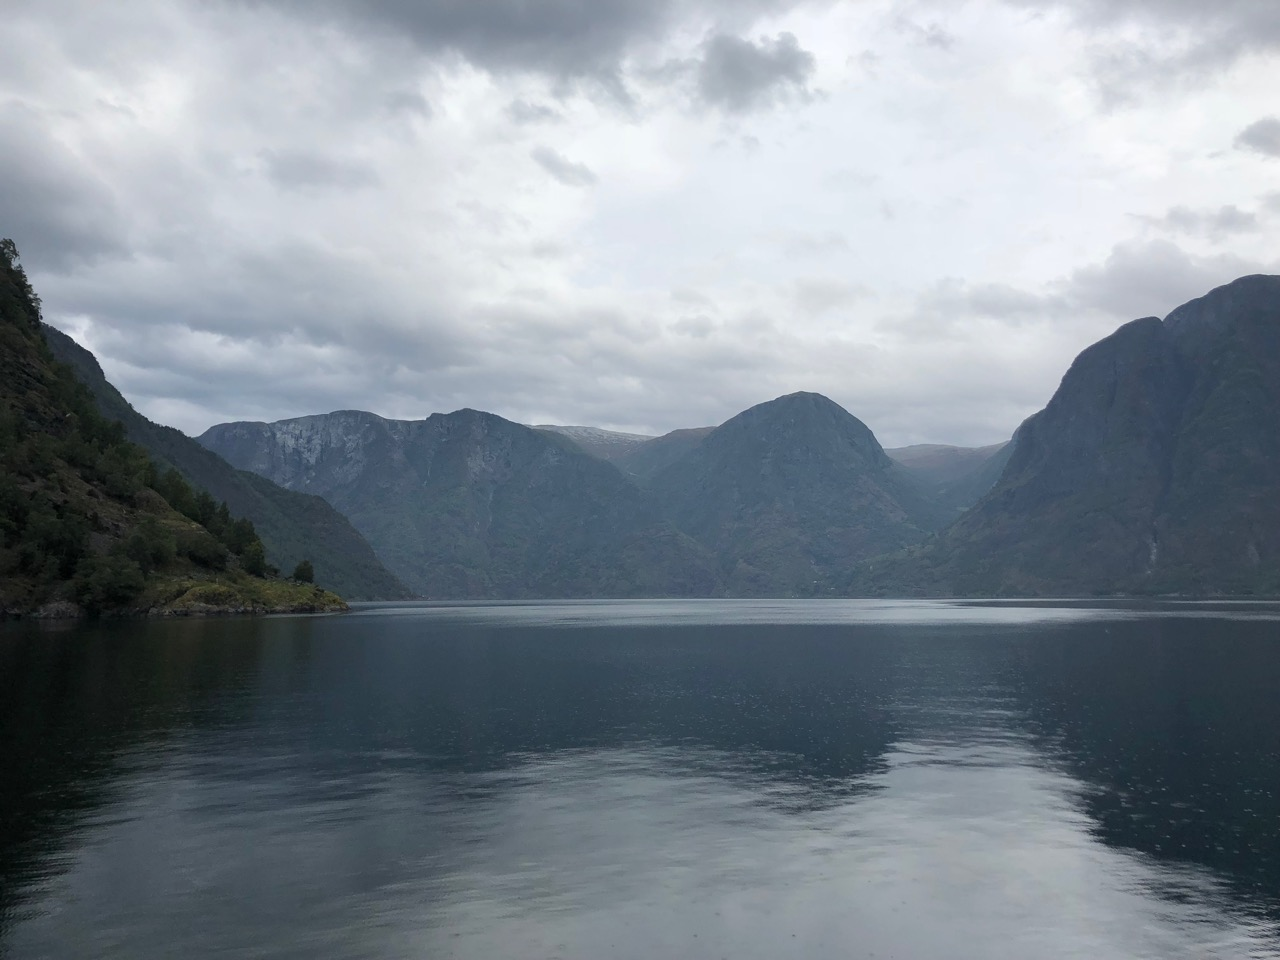 From Flan along the Fjord by Ferry